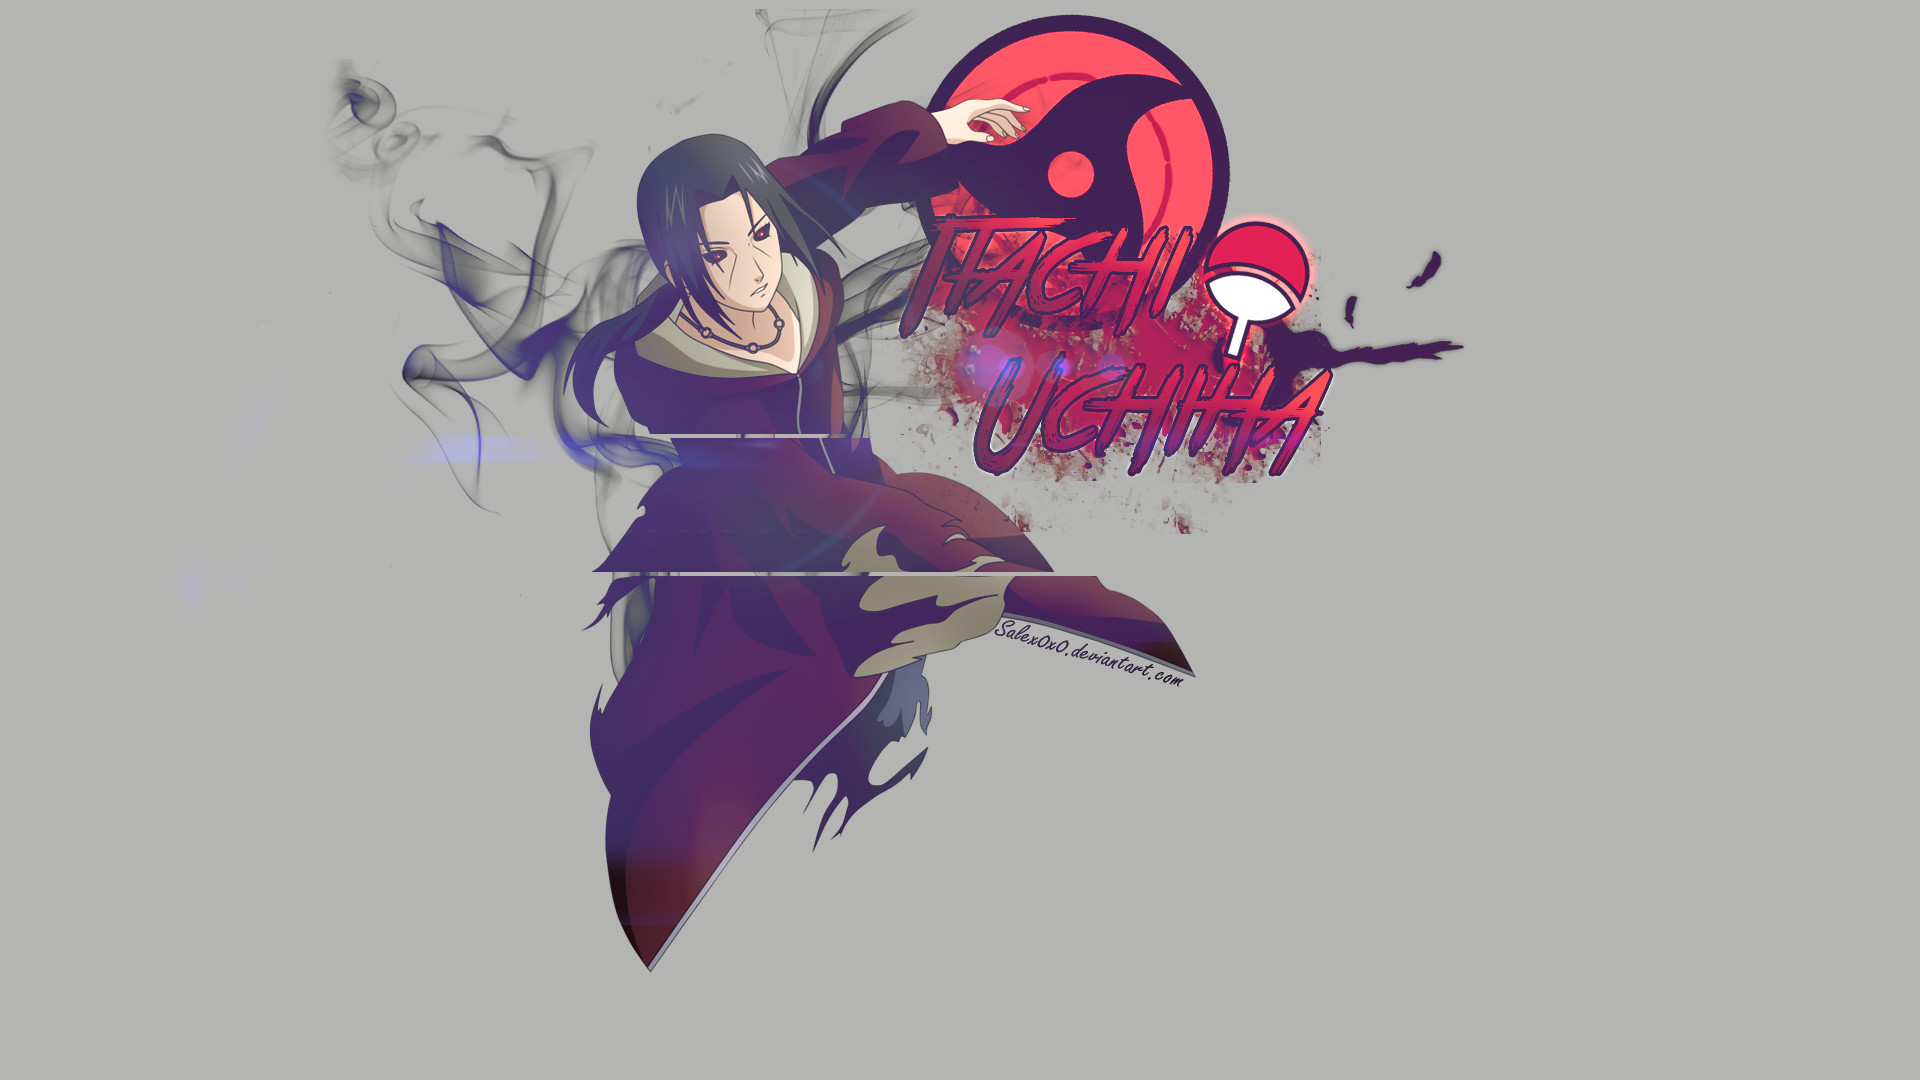 Itachi Uchiha Wallpaper HD (71+ images)